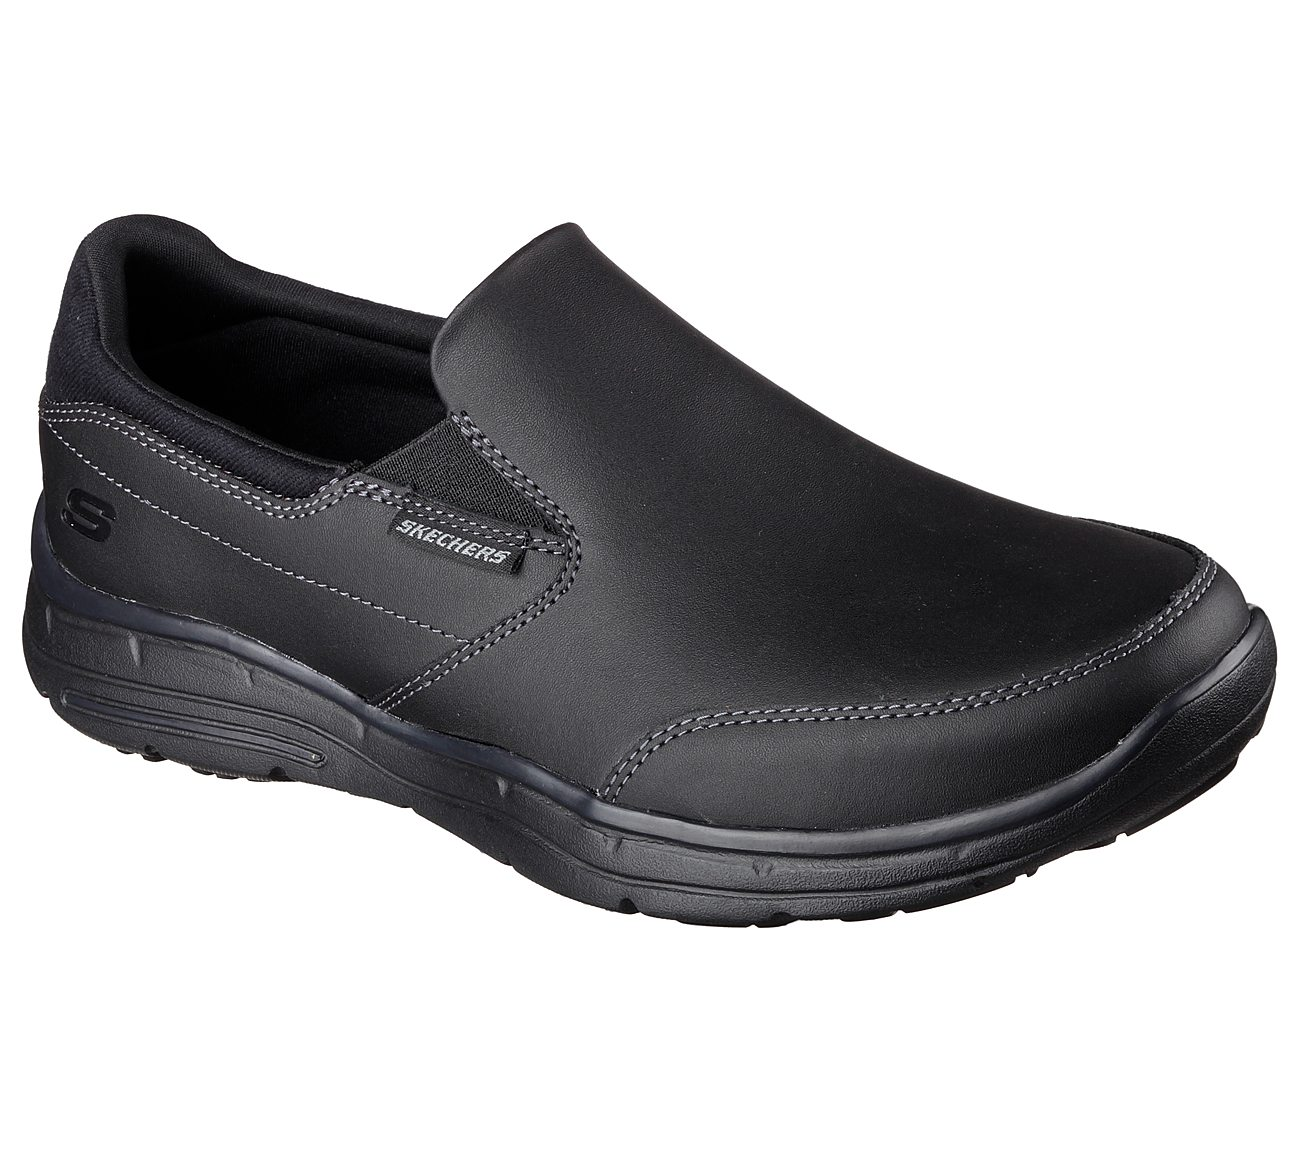 f6b0e8400ef Buy SKECHERS Relaxed Fit  Glides - Calculous USA Casuals Shoes only ...